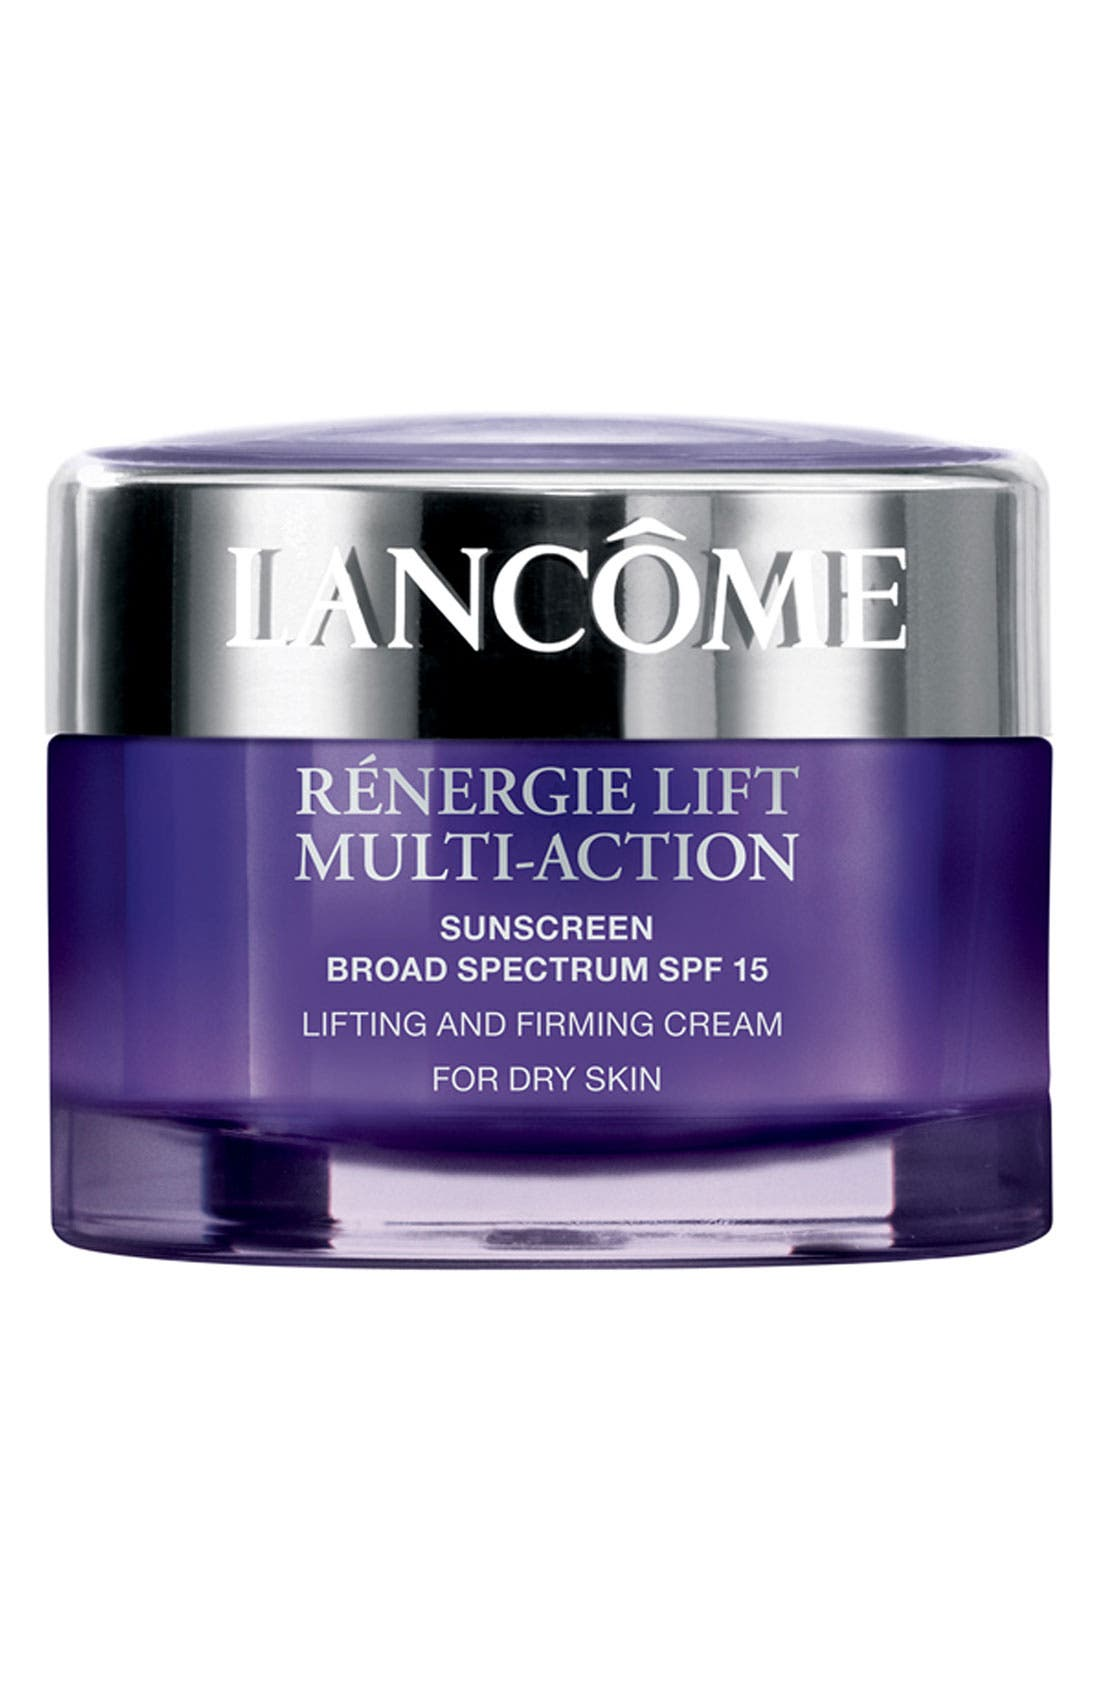 Rénergie Lift Multi Action Moisturizer Cream SPF 15 for Dry Skin,                         Main,                         color, NO COLOR